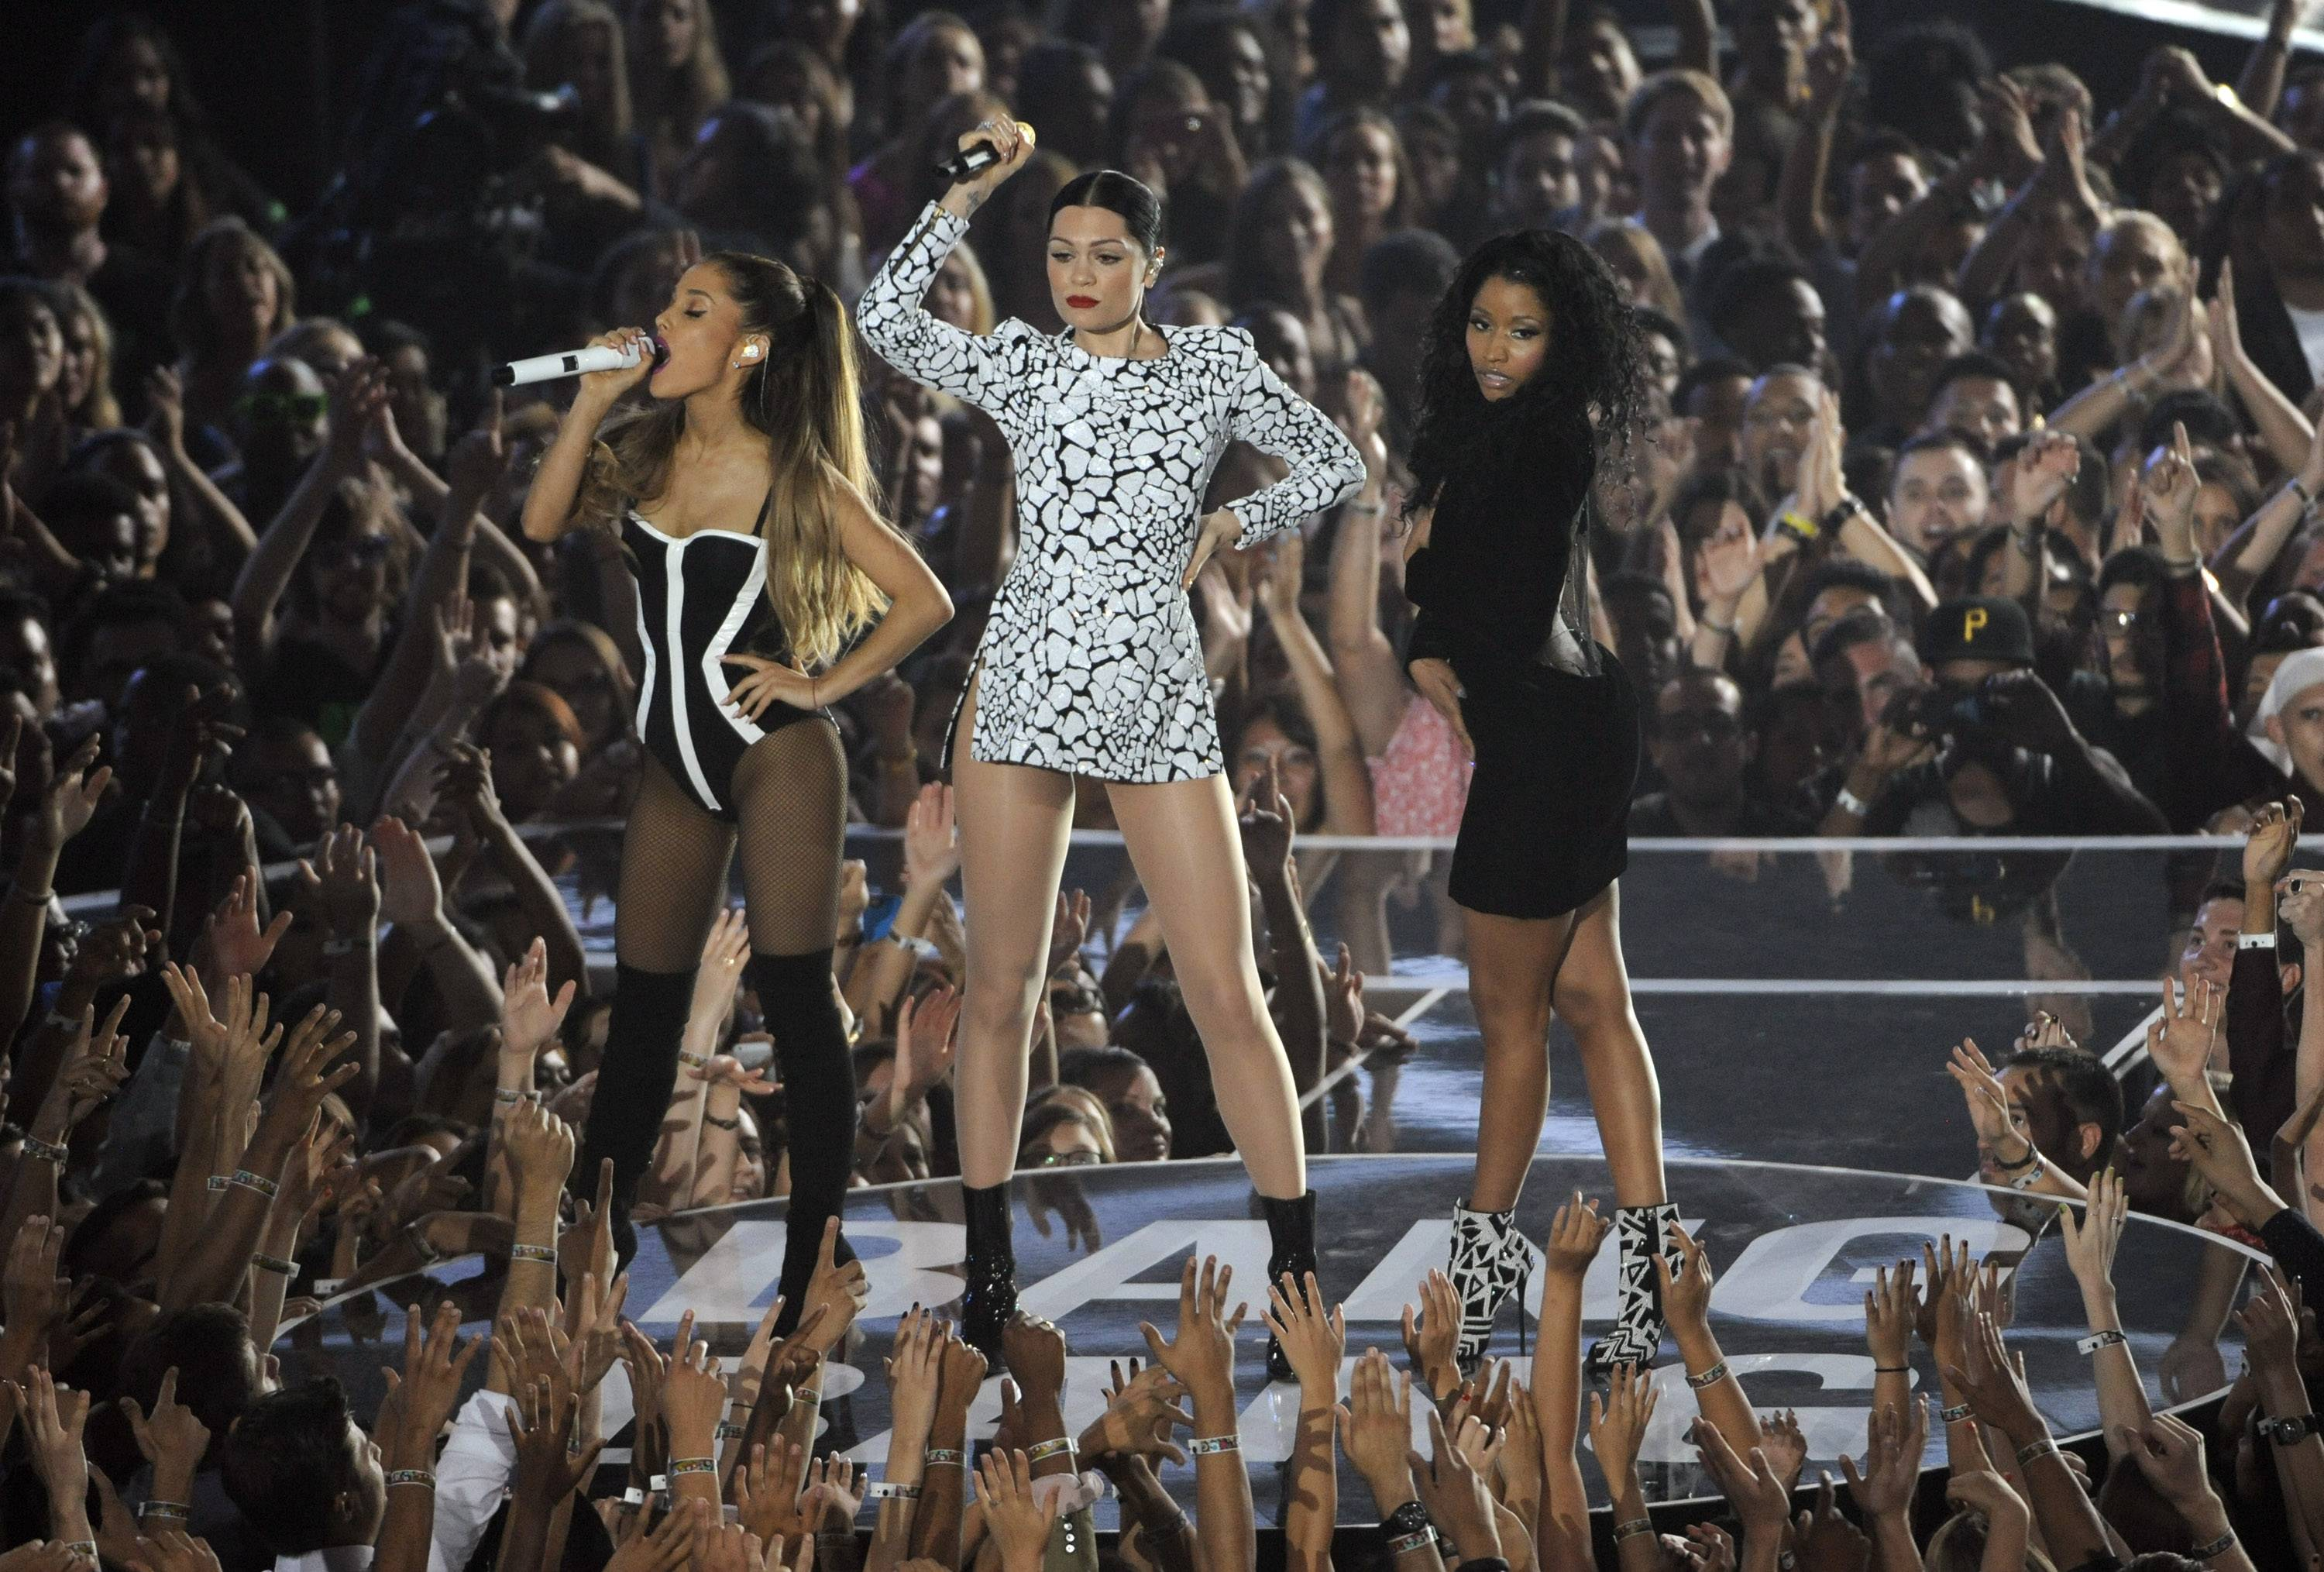 Ariana Grande, from left, Jessie J and Nicki Minaj perform Sunday at the MTV Video Music Awards.